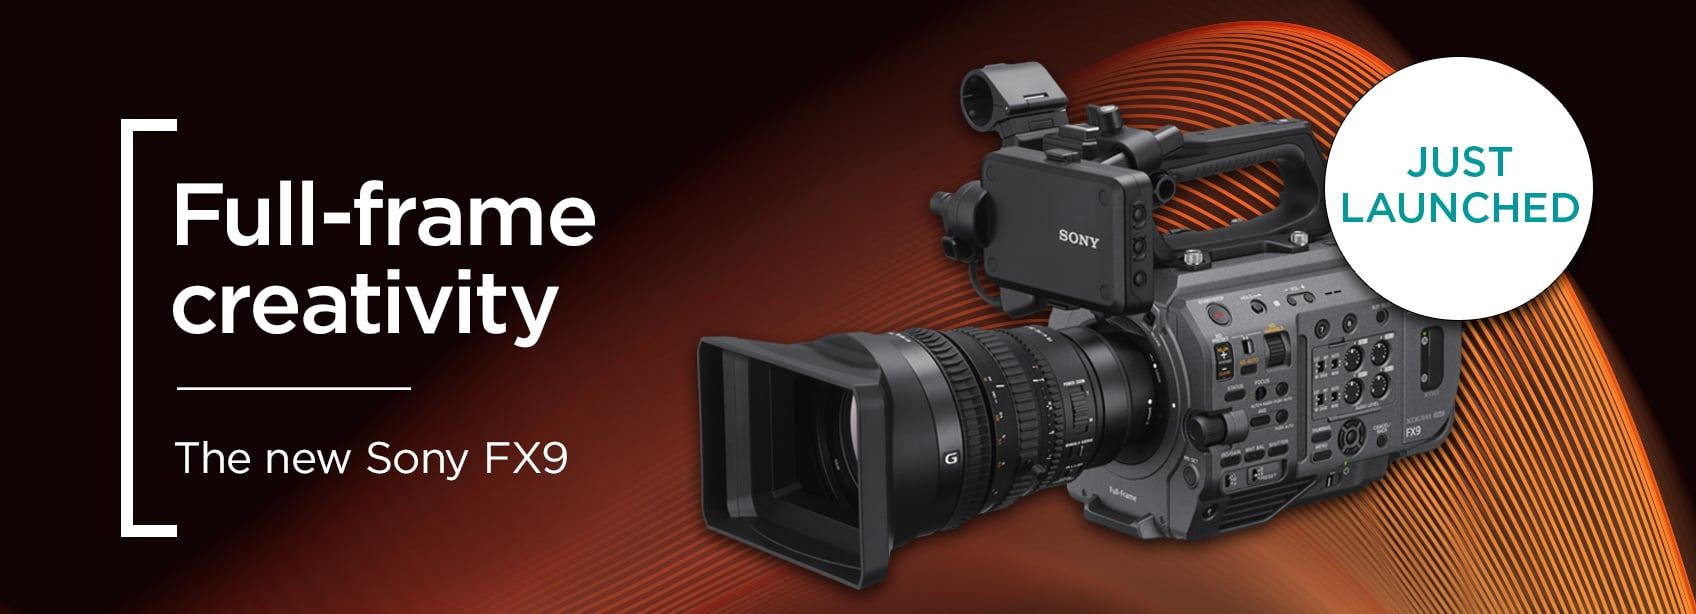 Full-frame creativity | The new 6K Sony FX9